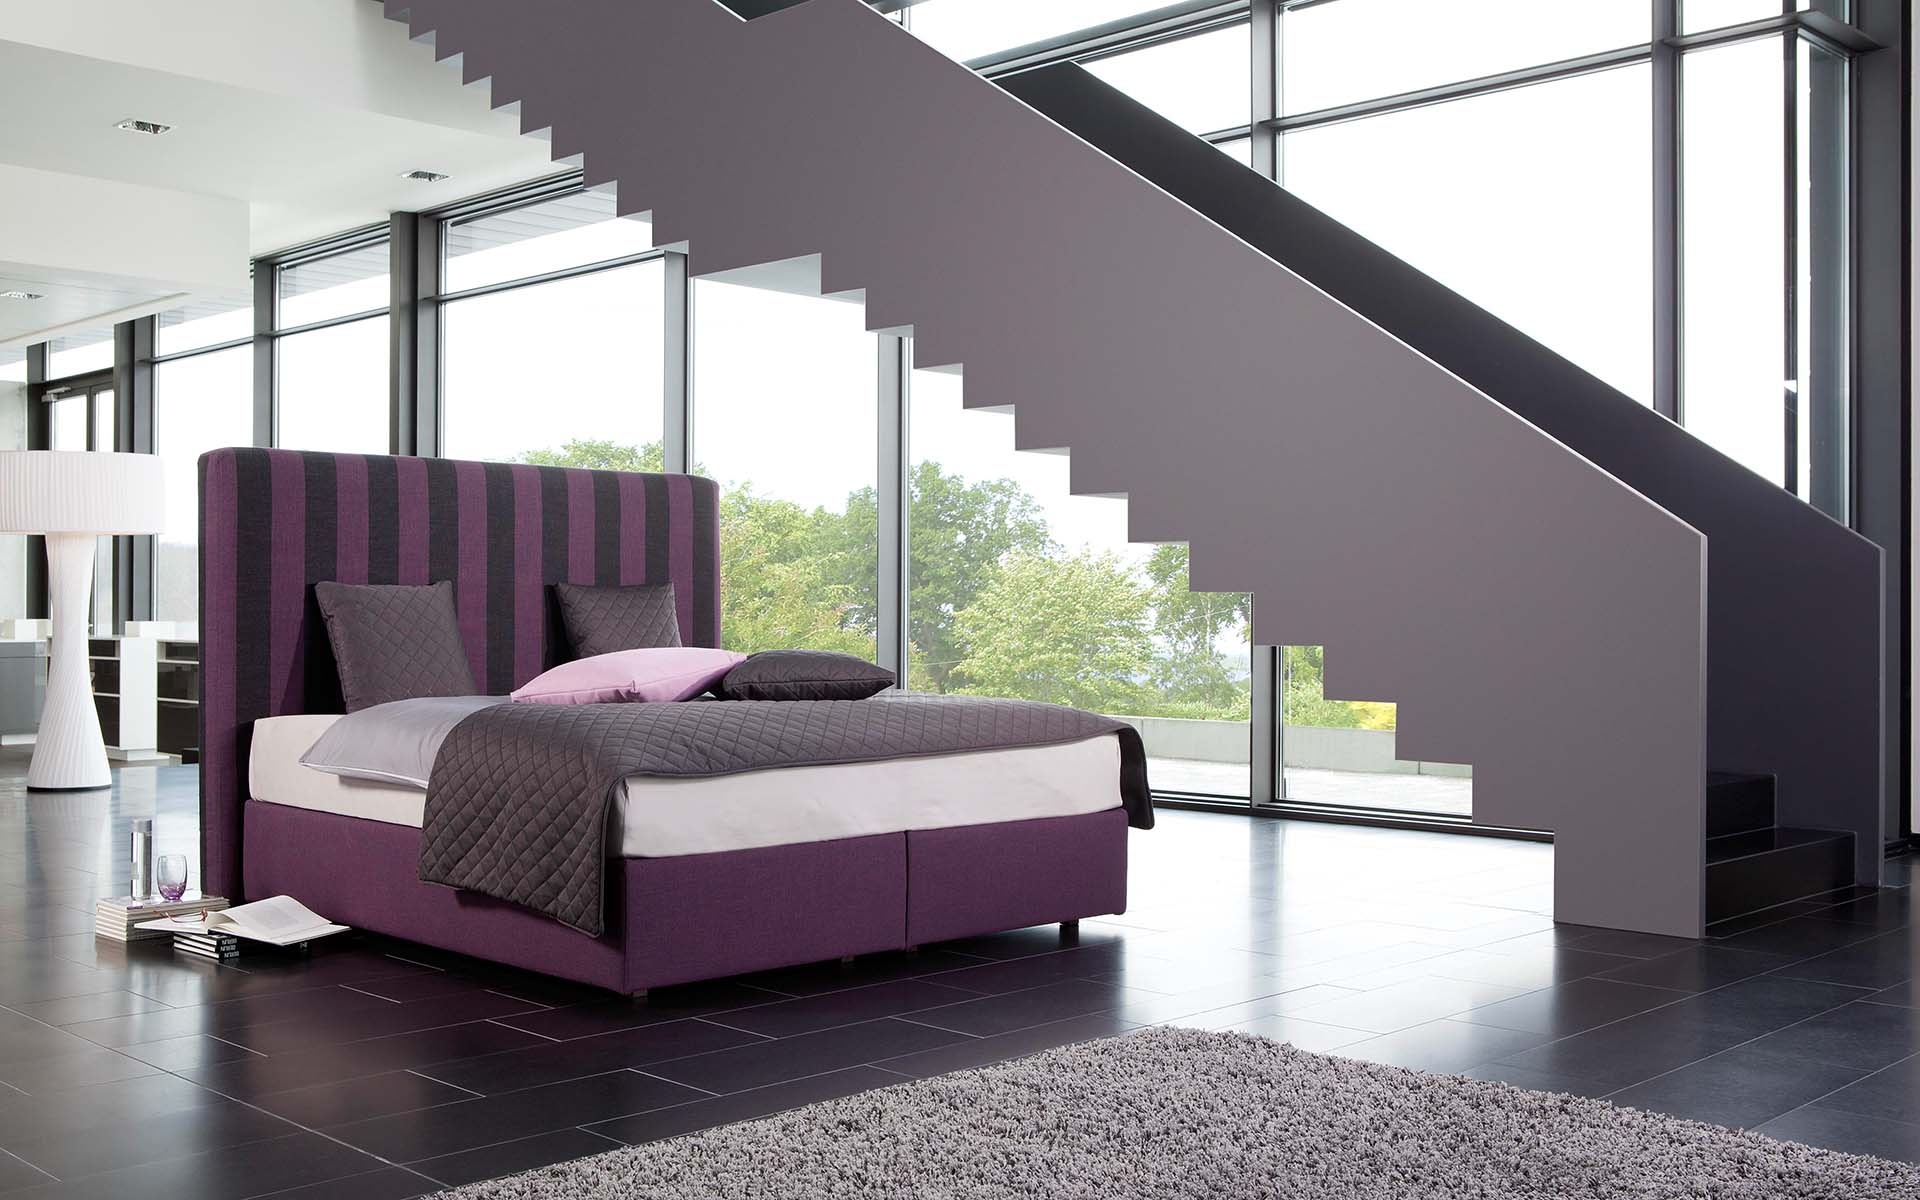 h sler nest bettsystem m belzentrum. Black Bedroom Furniture Sets. Home Design Ideas